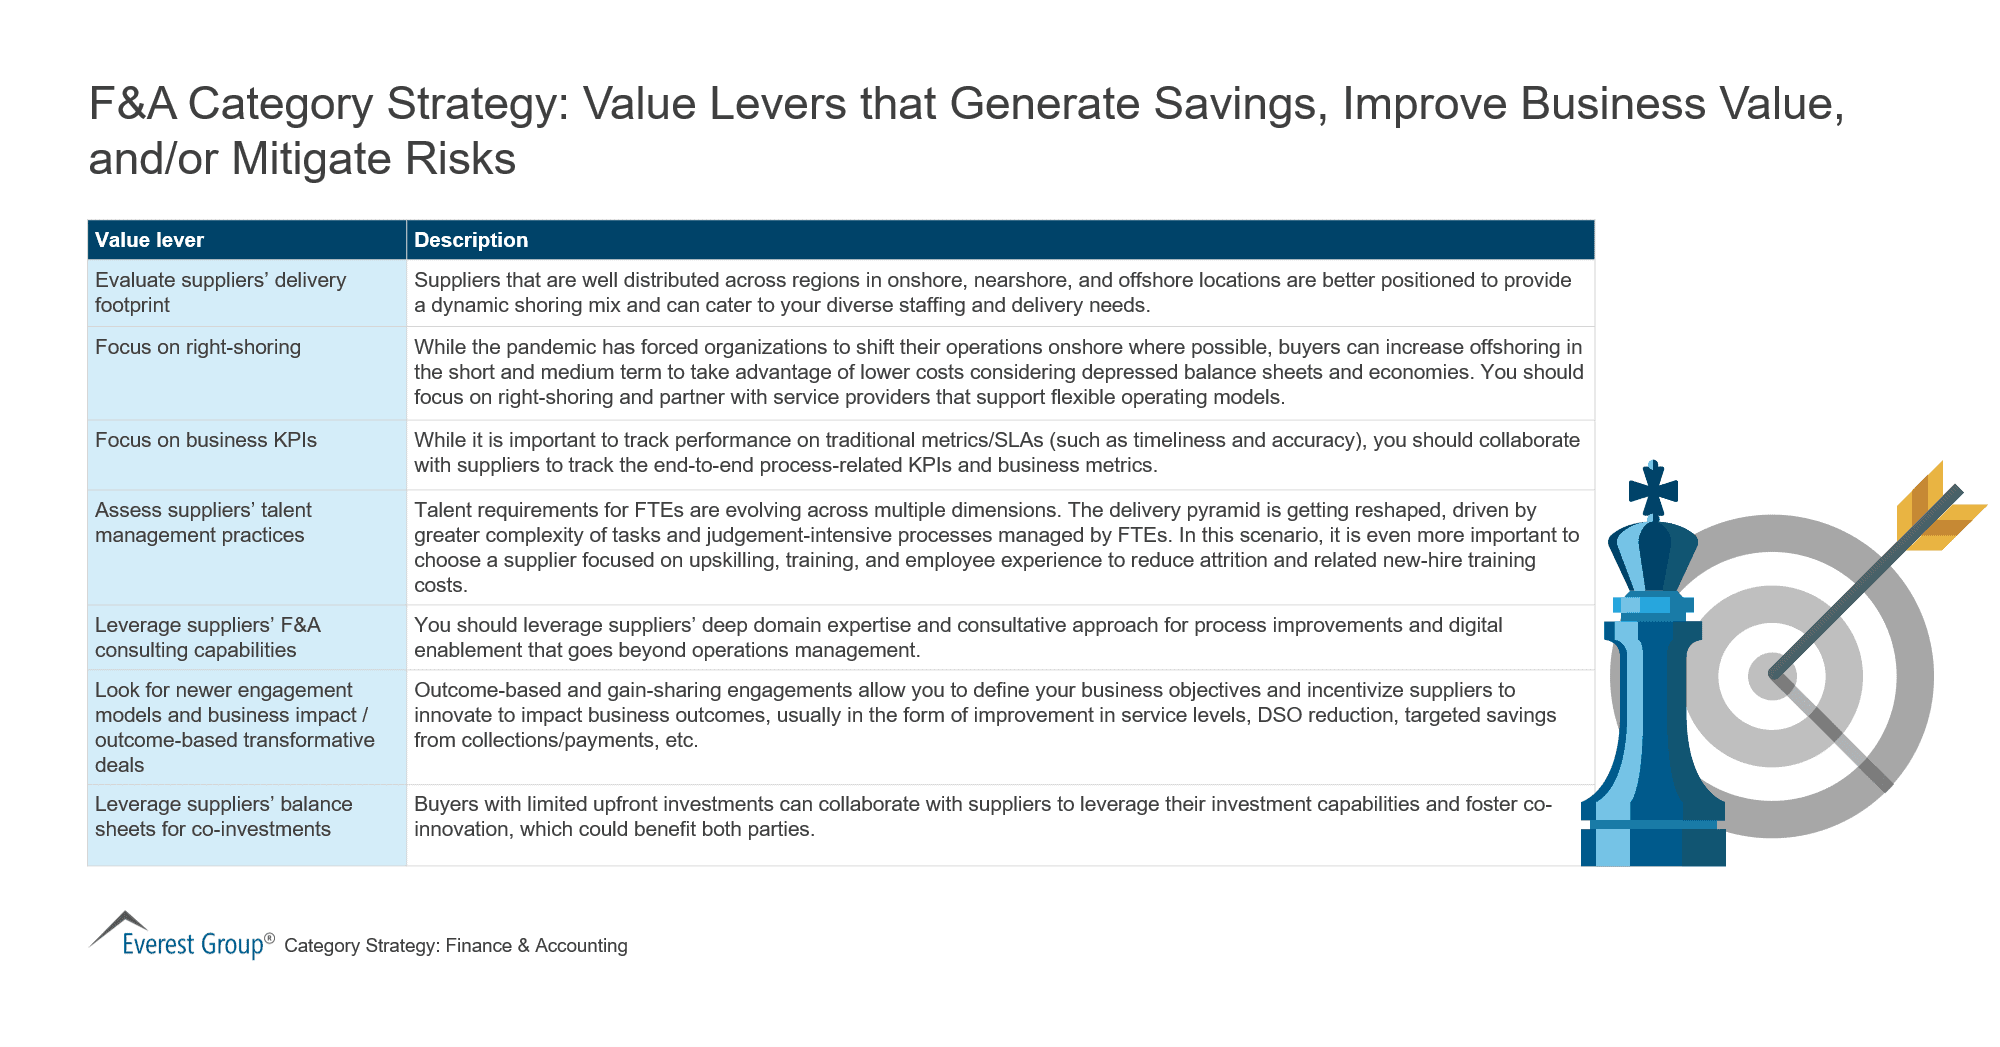 F&A Category Strategy - Value Levers that Generate Savings, Improve Business Value, Mitigate Risks